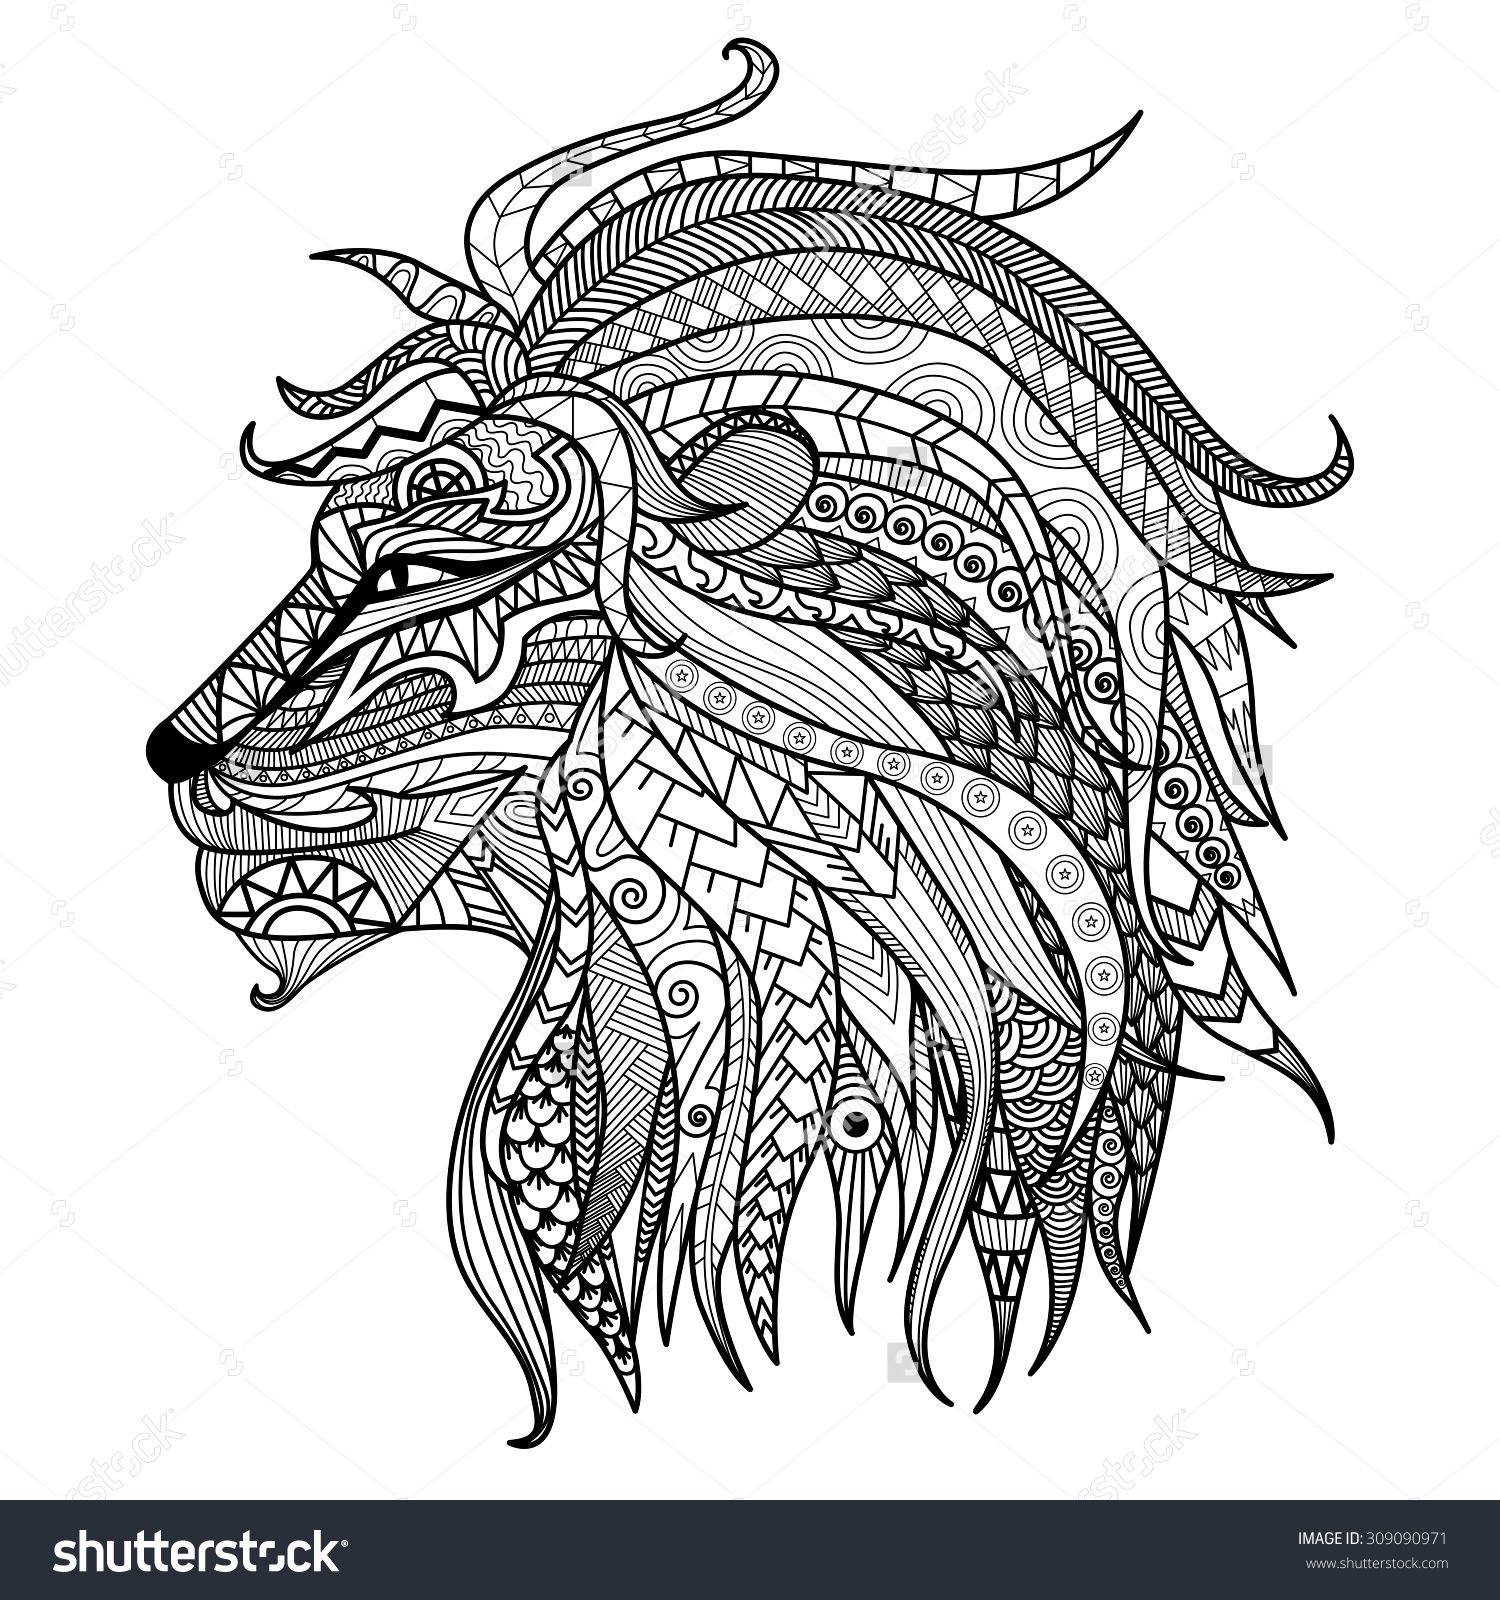 Hand Drawn Lion Coloring Page Stock Vector Illustration 309090971